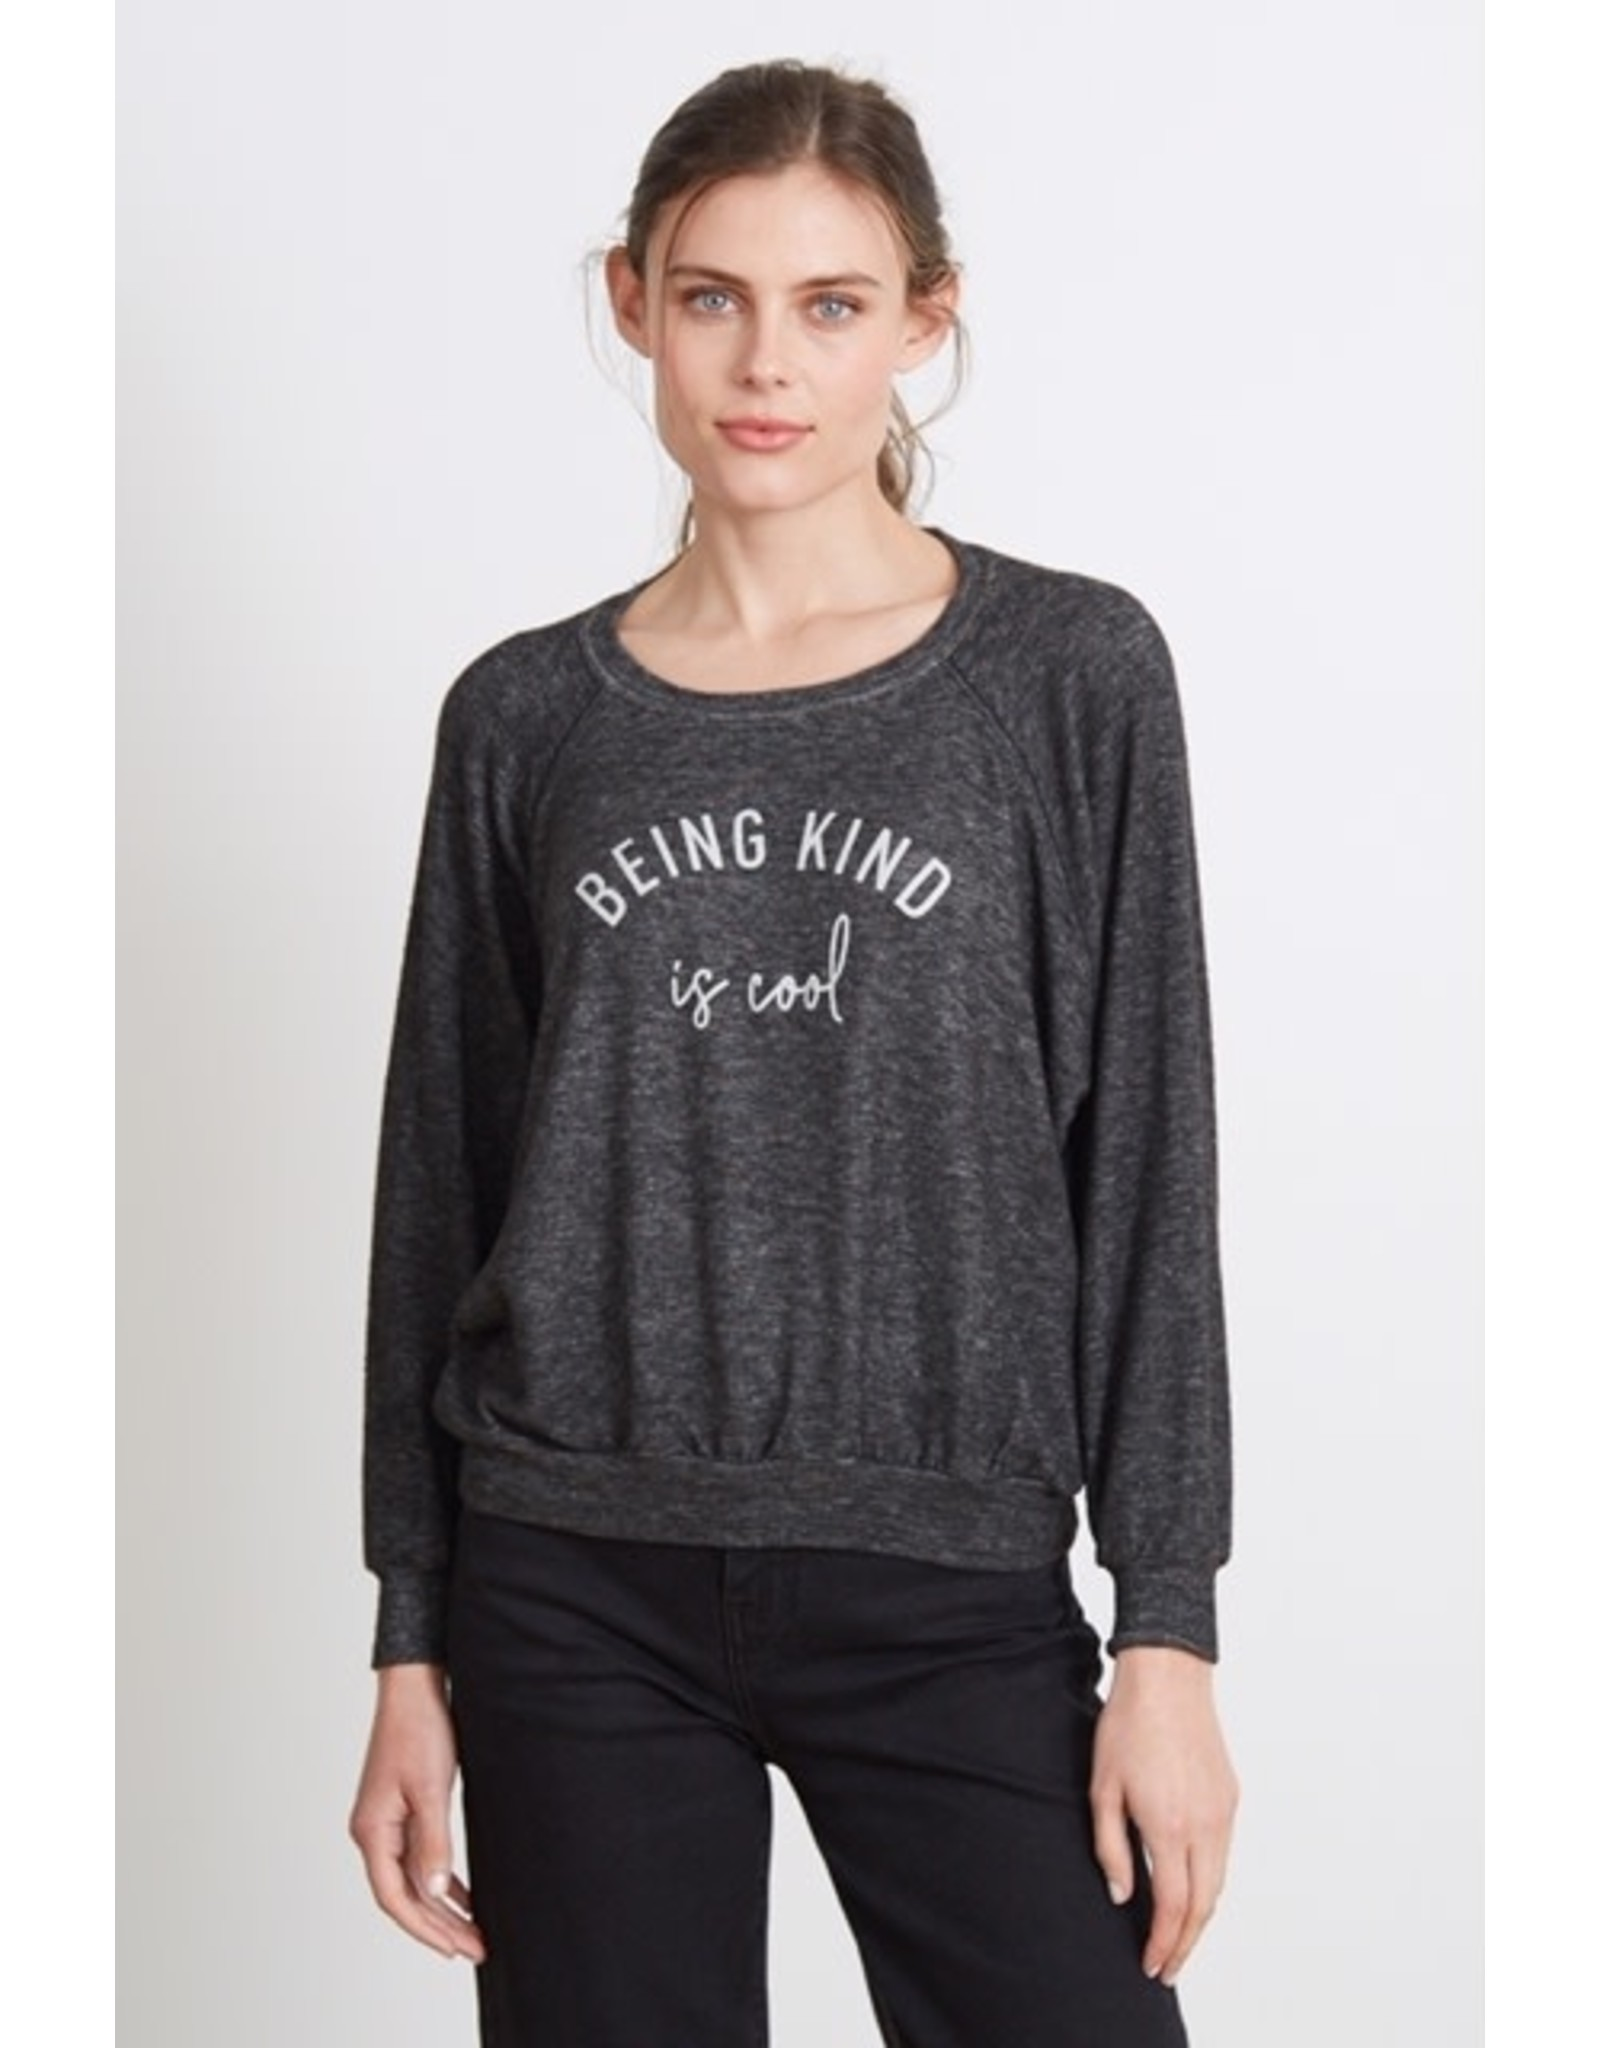 good hYOUman good hYOUman - Emerson sweatshirt - Being Kind is Cool